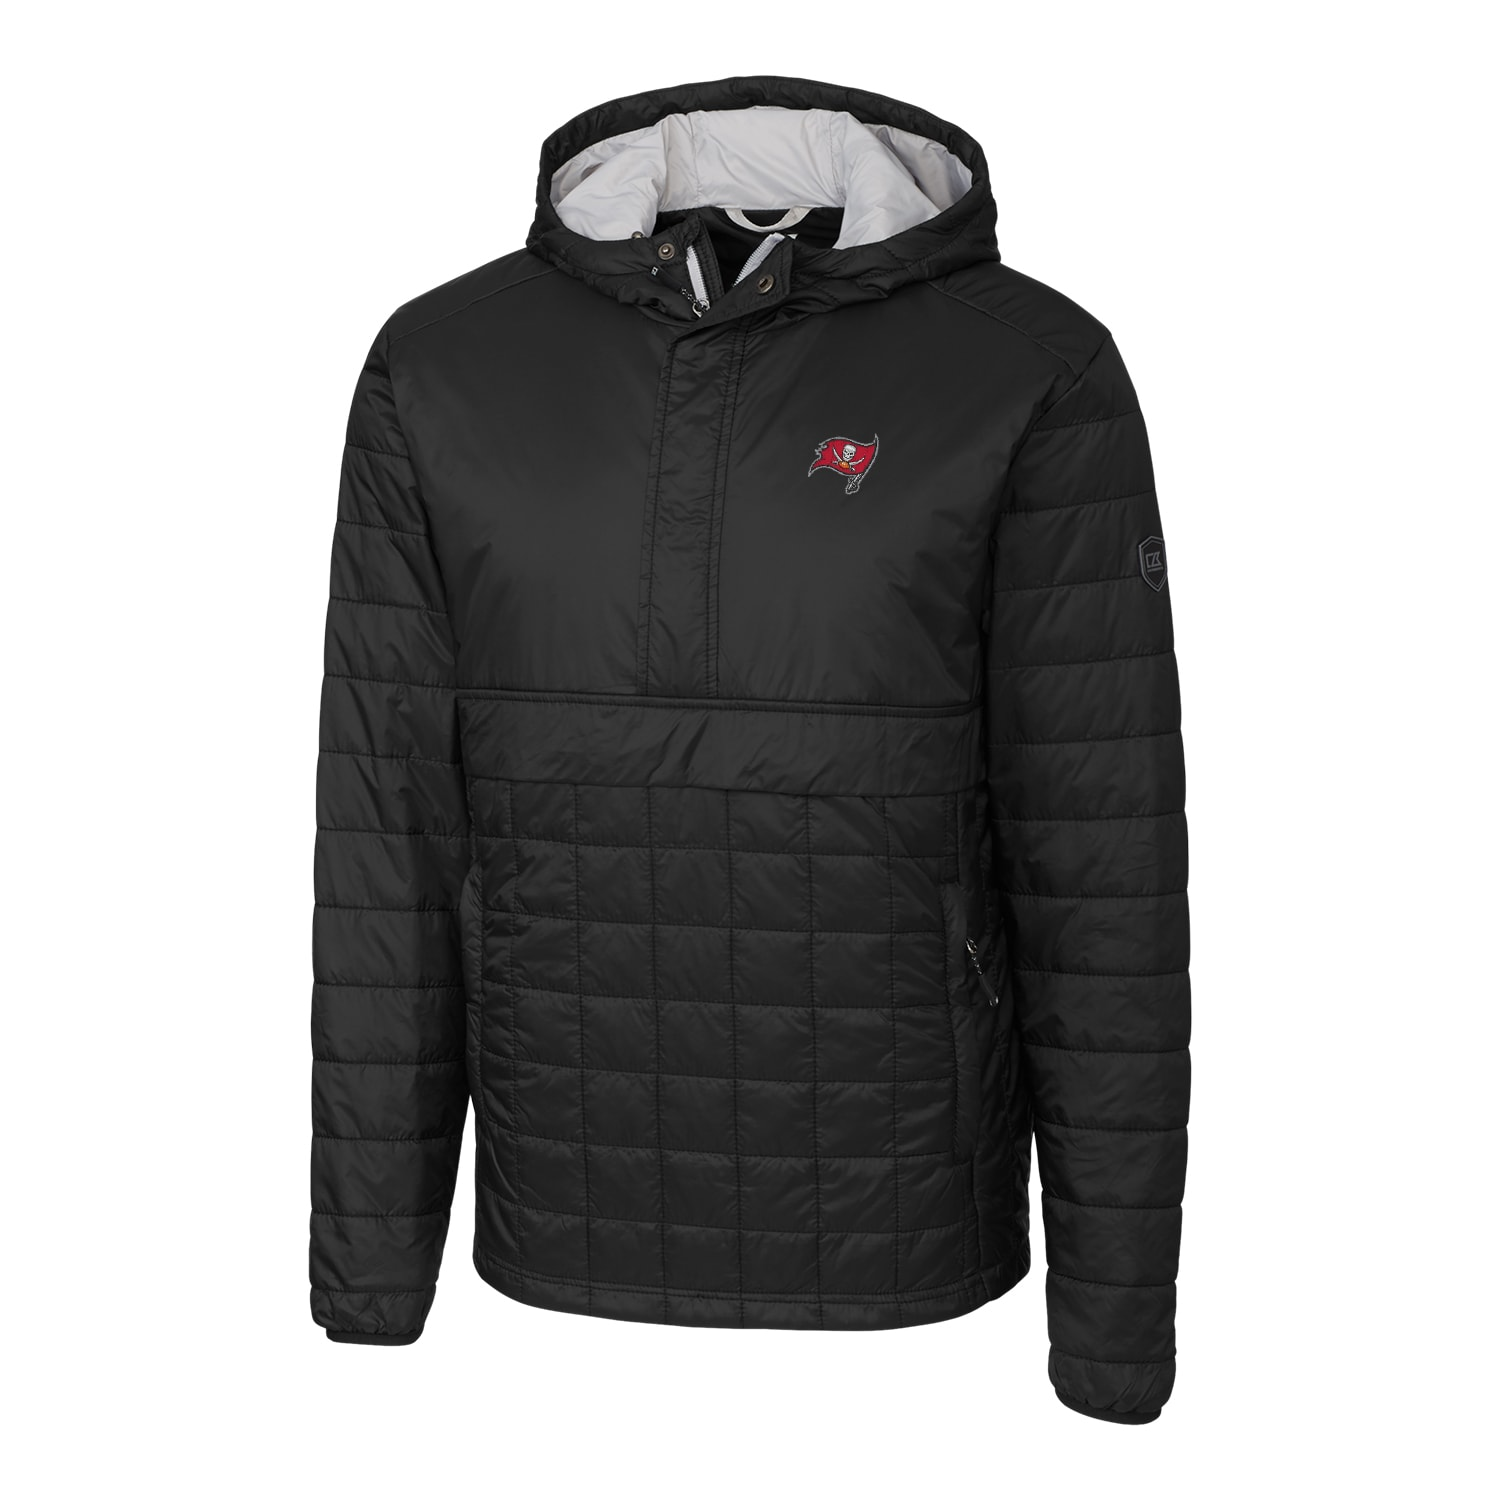 Tampa Bay Buccaneers Cutter & Buck Rainier Hooded Half-Zip Pullover Jacket - Black